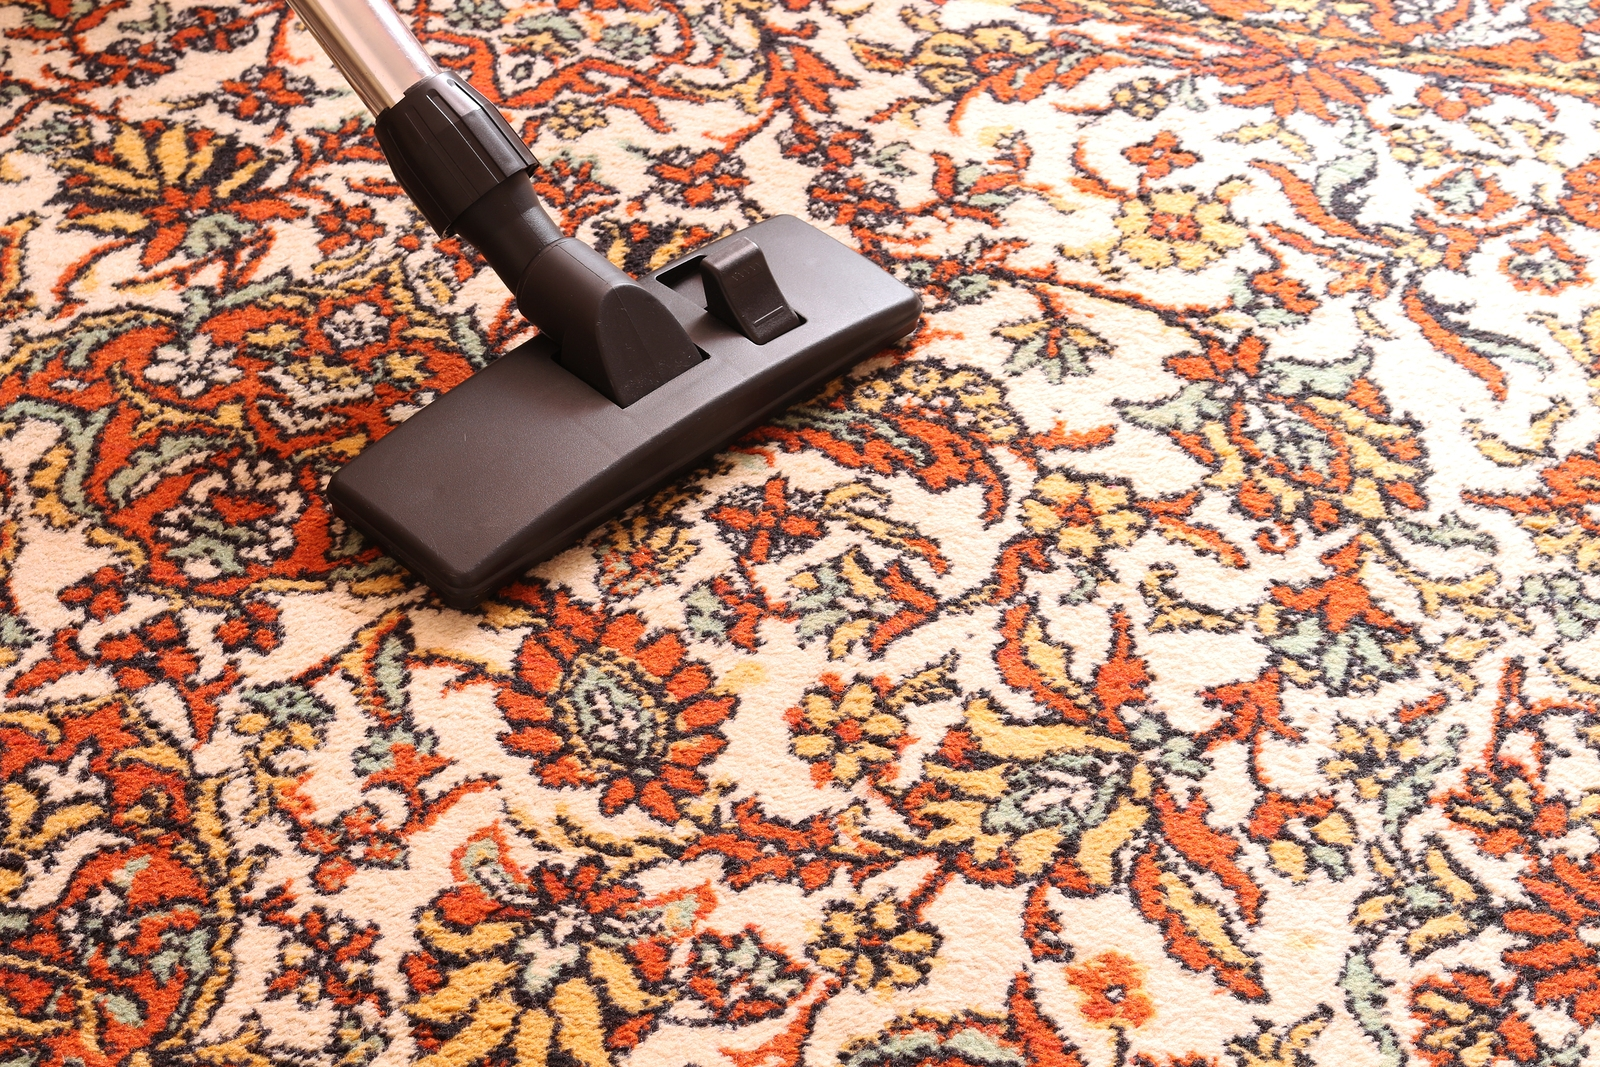 Professional Residential Cleaners - Why Clean in the Spring?